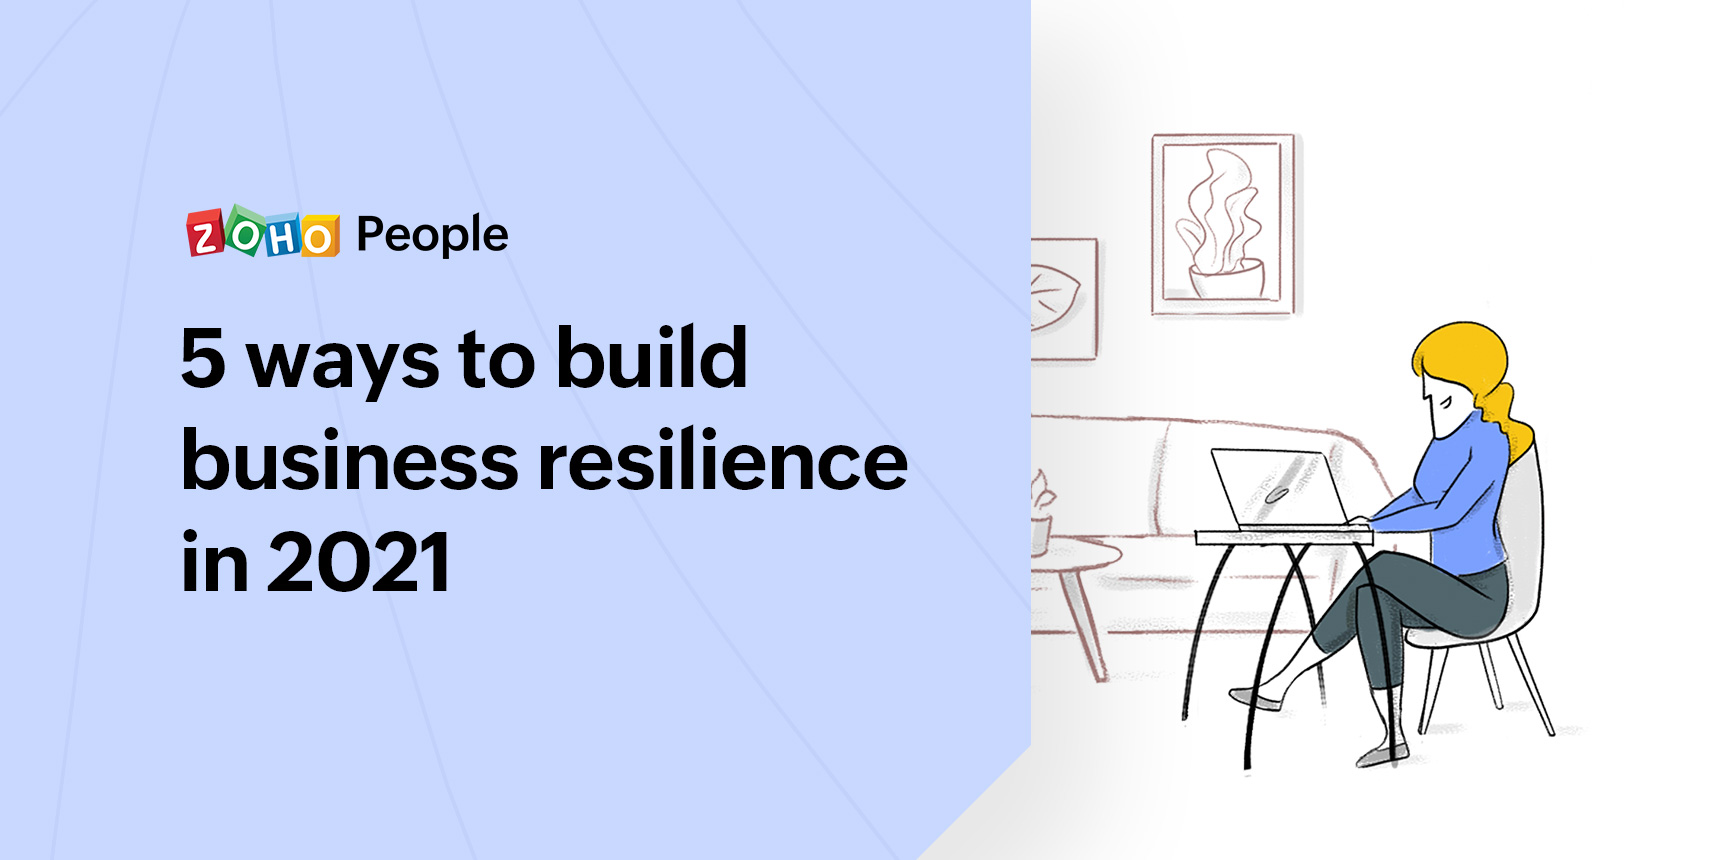 How businesses can build resilience in 2021